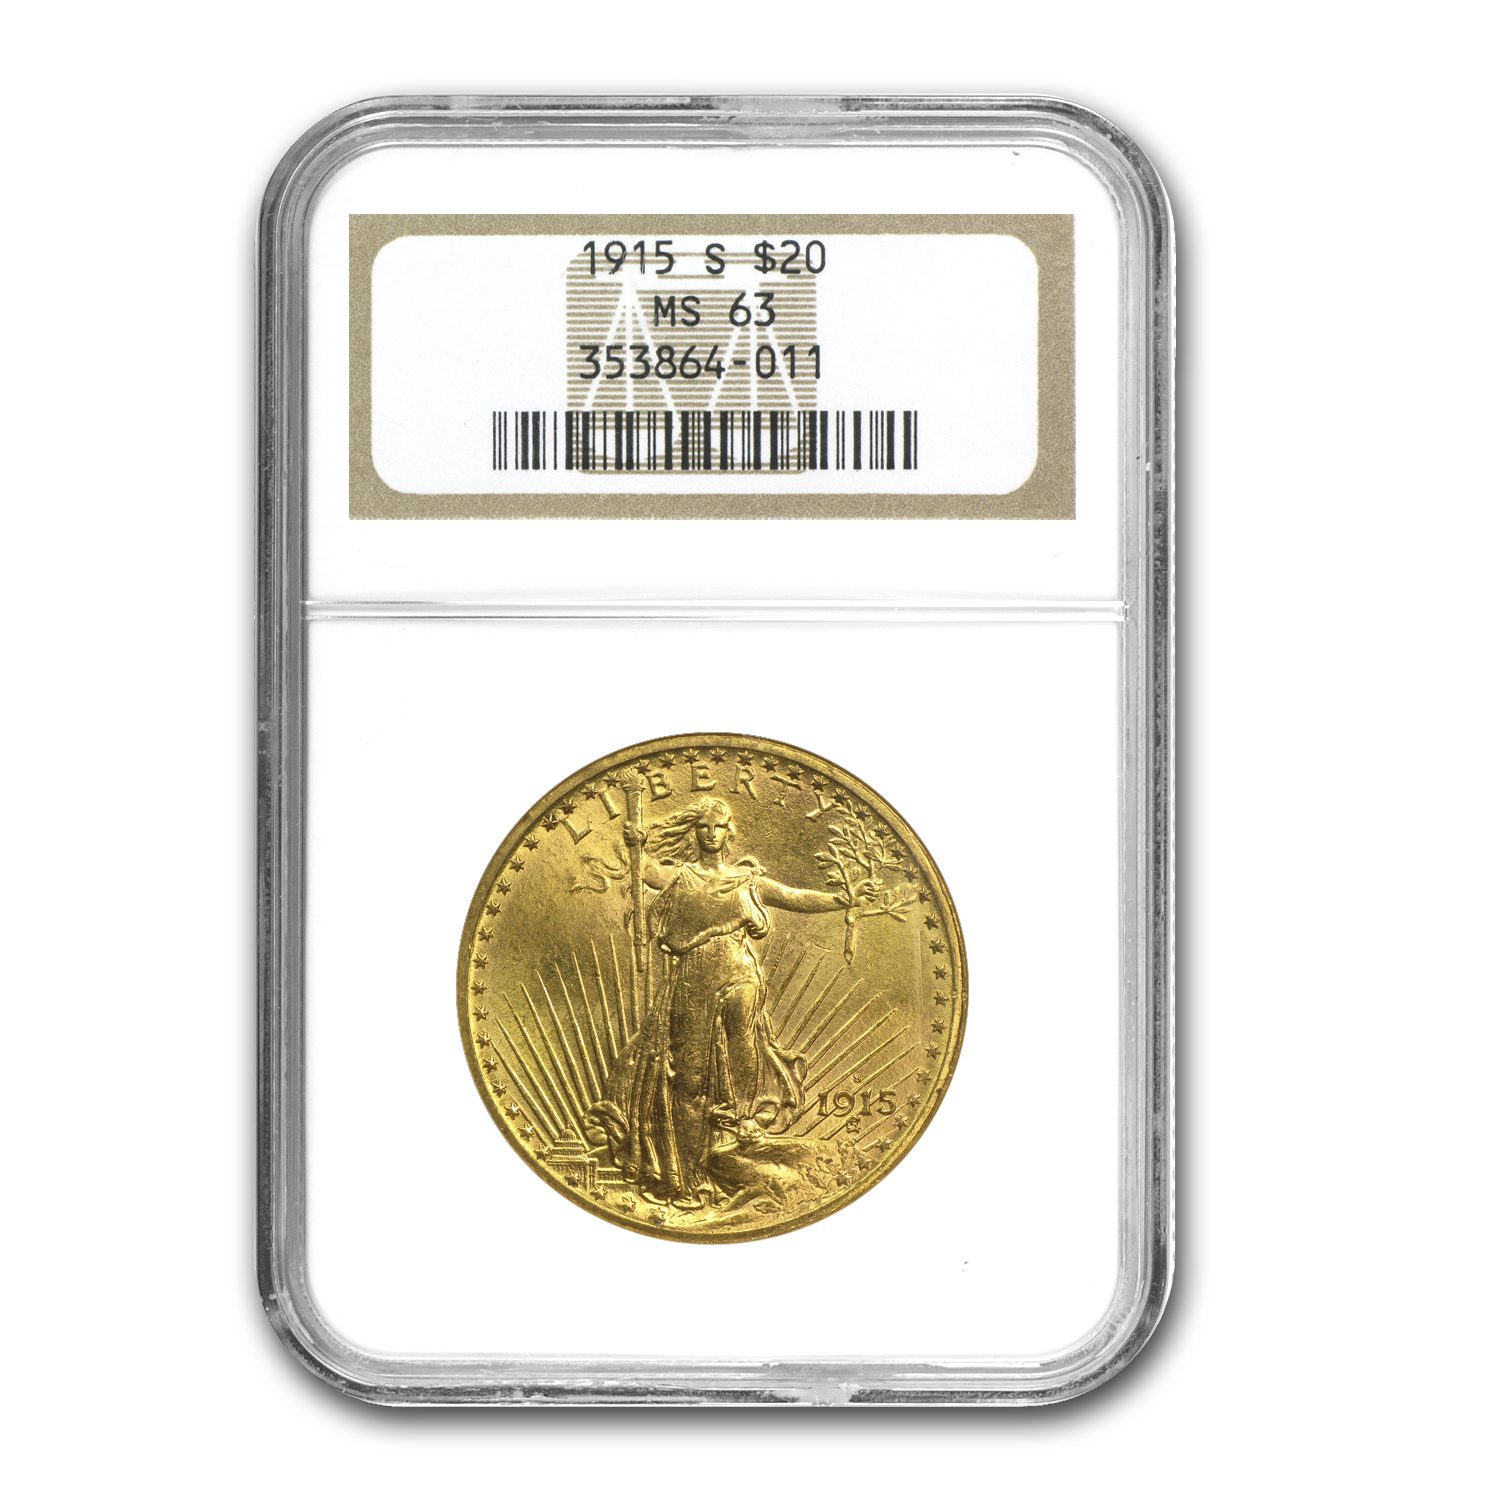 1915-S $20 St. Gaudens Gold Double Eagle MS-63 NGC